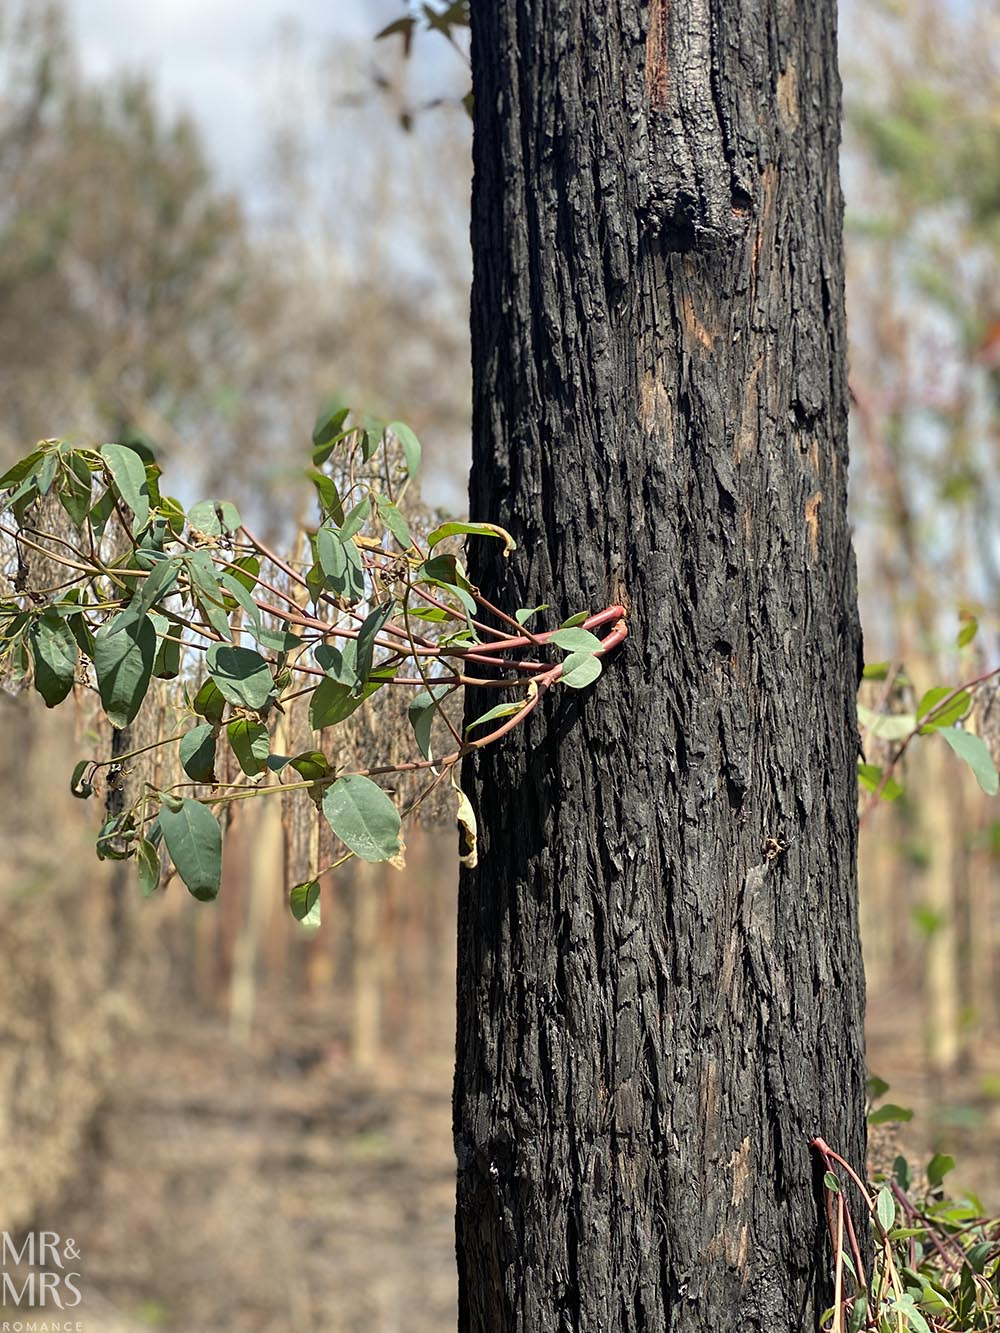 Australia bushfire regrowth